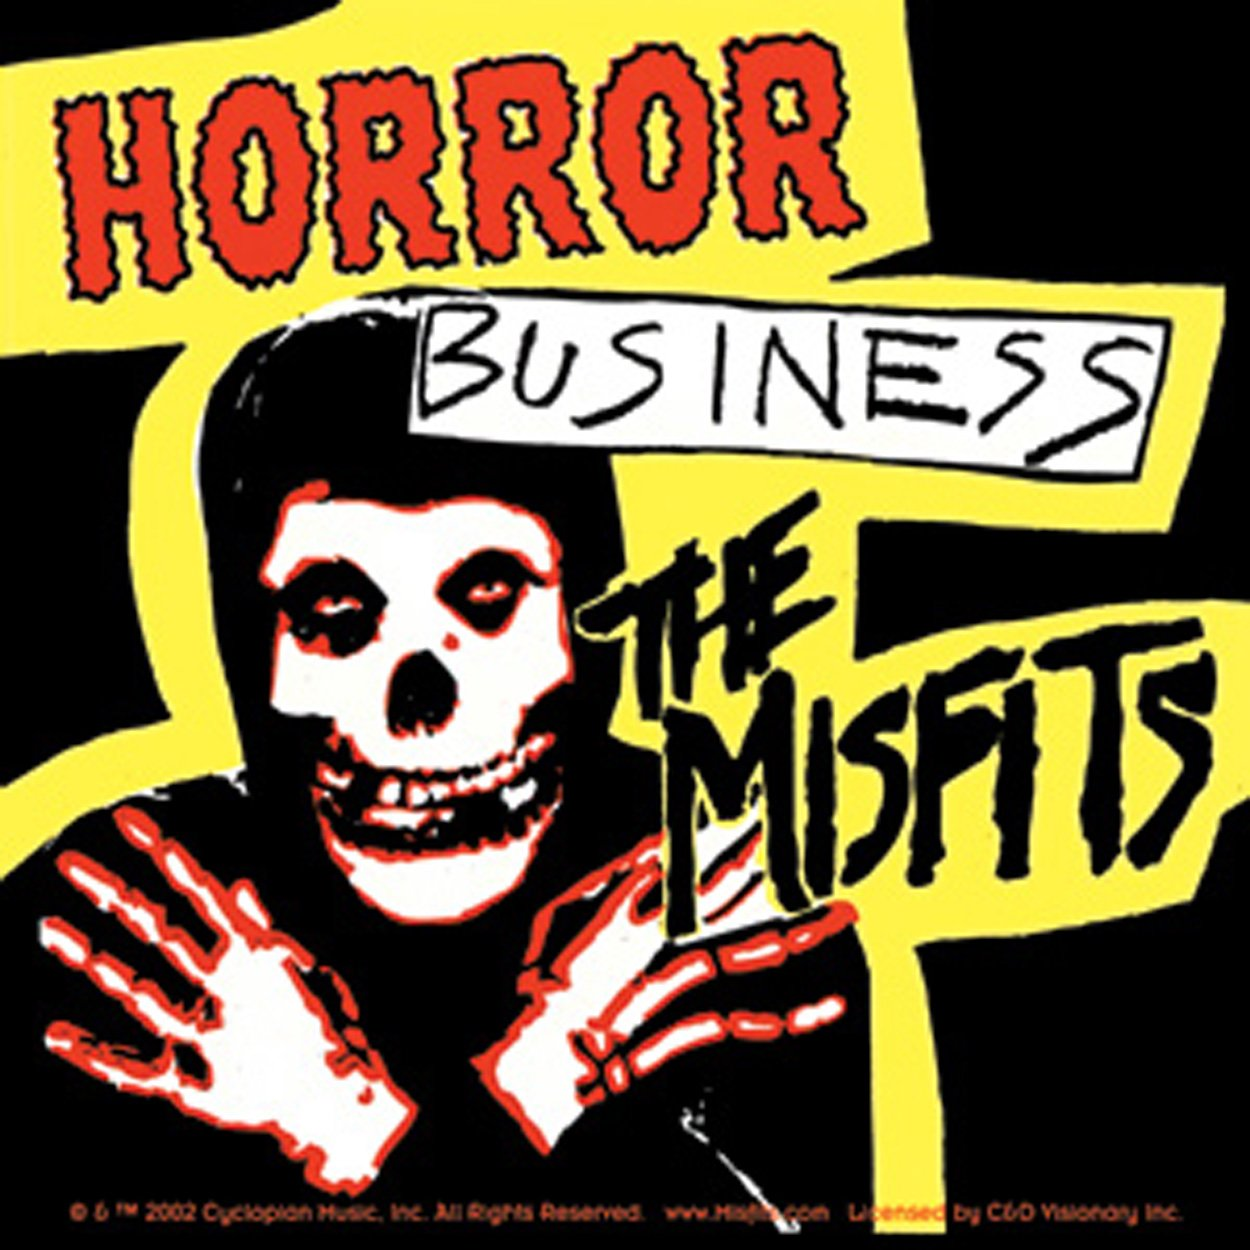 The MISFITS HORROR BUSINESS, Official Licensed Product, 7.7' x 4.2' - Sticker Pegatina DECAL 7.7 x 4.2 - Sticker Pegatina DECAL Officially Licensed & Trademarked Products S-0941